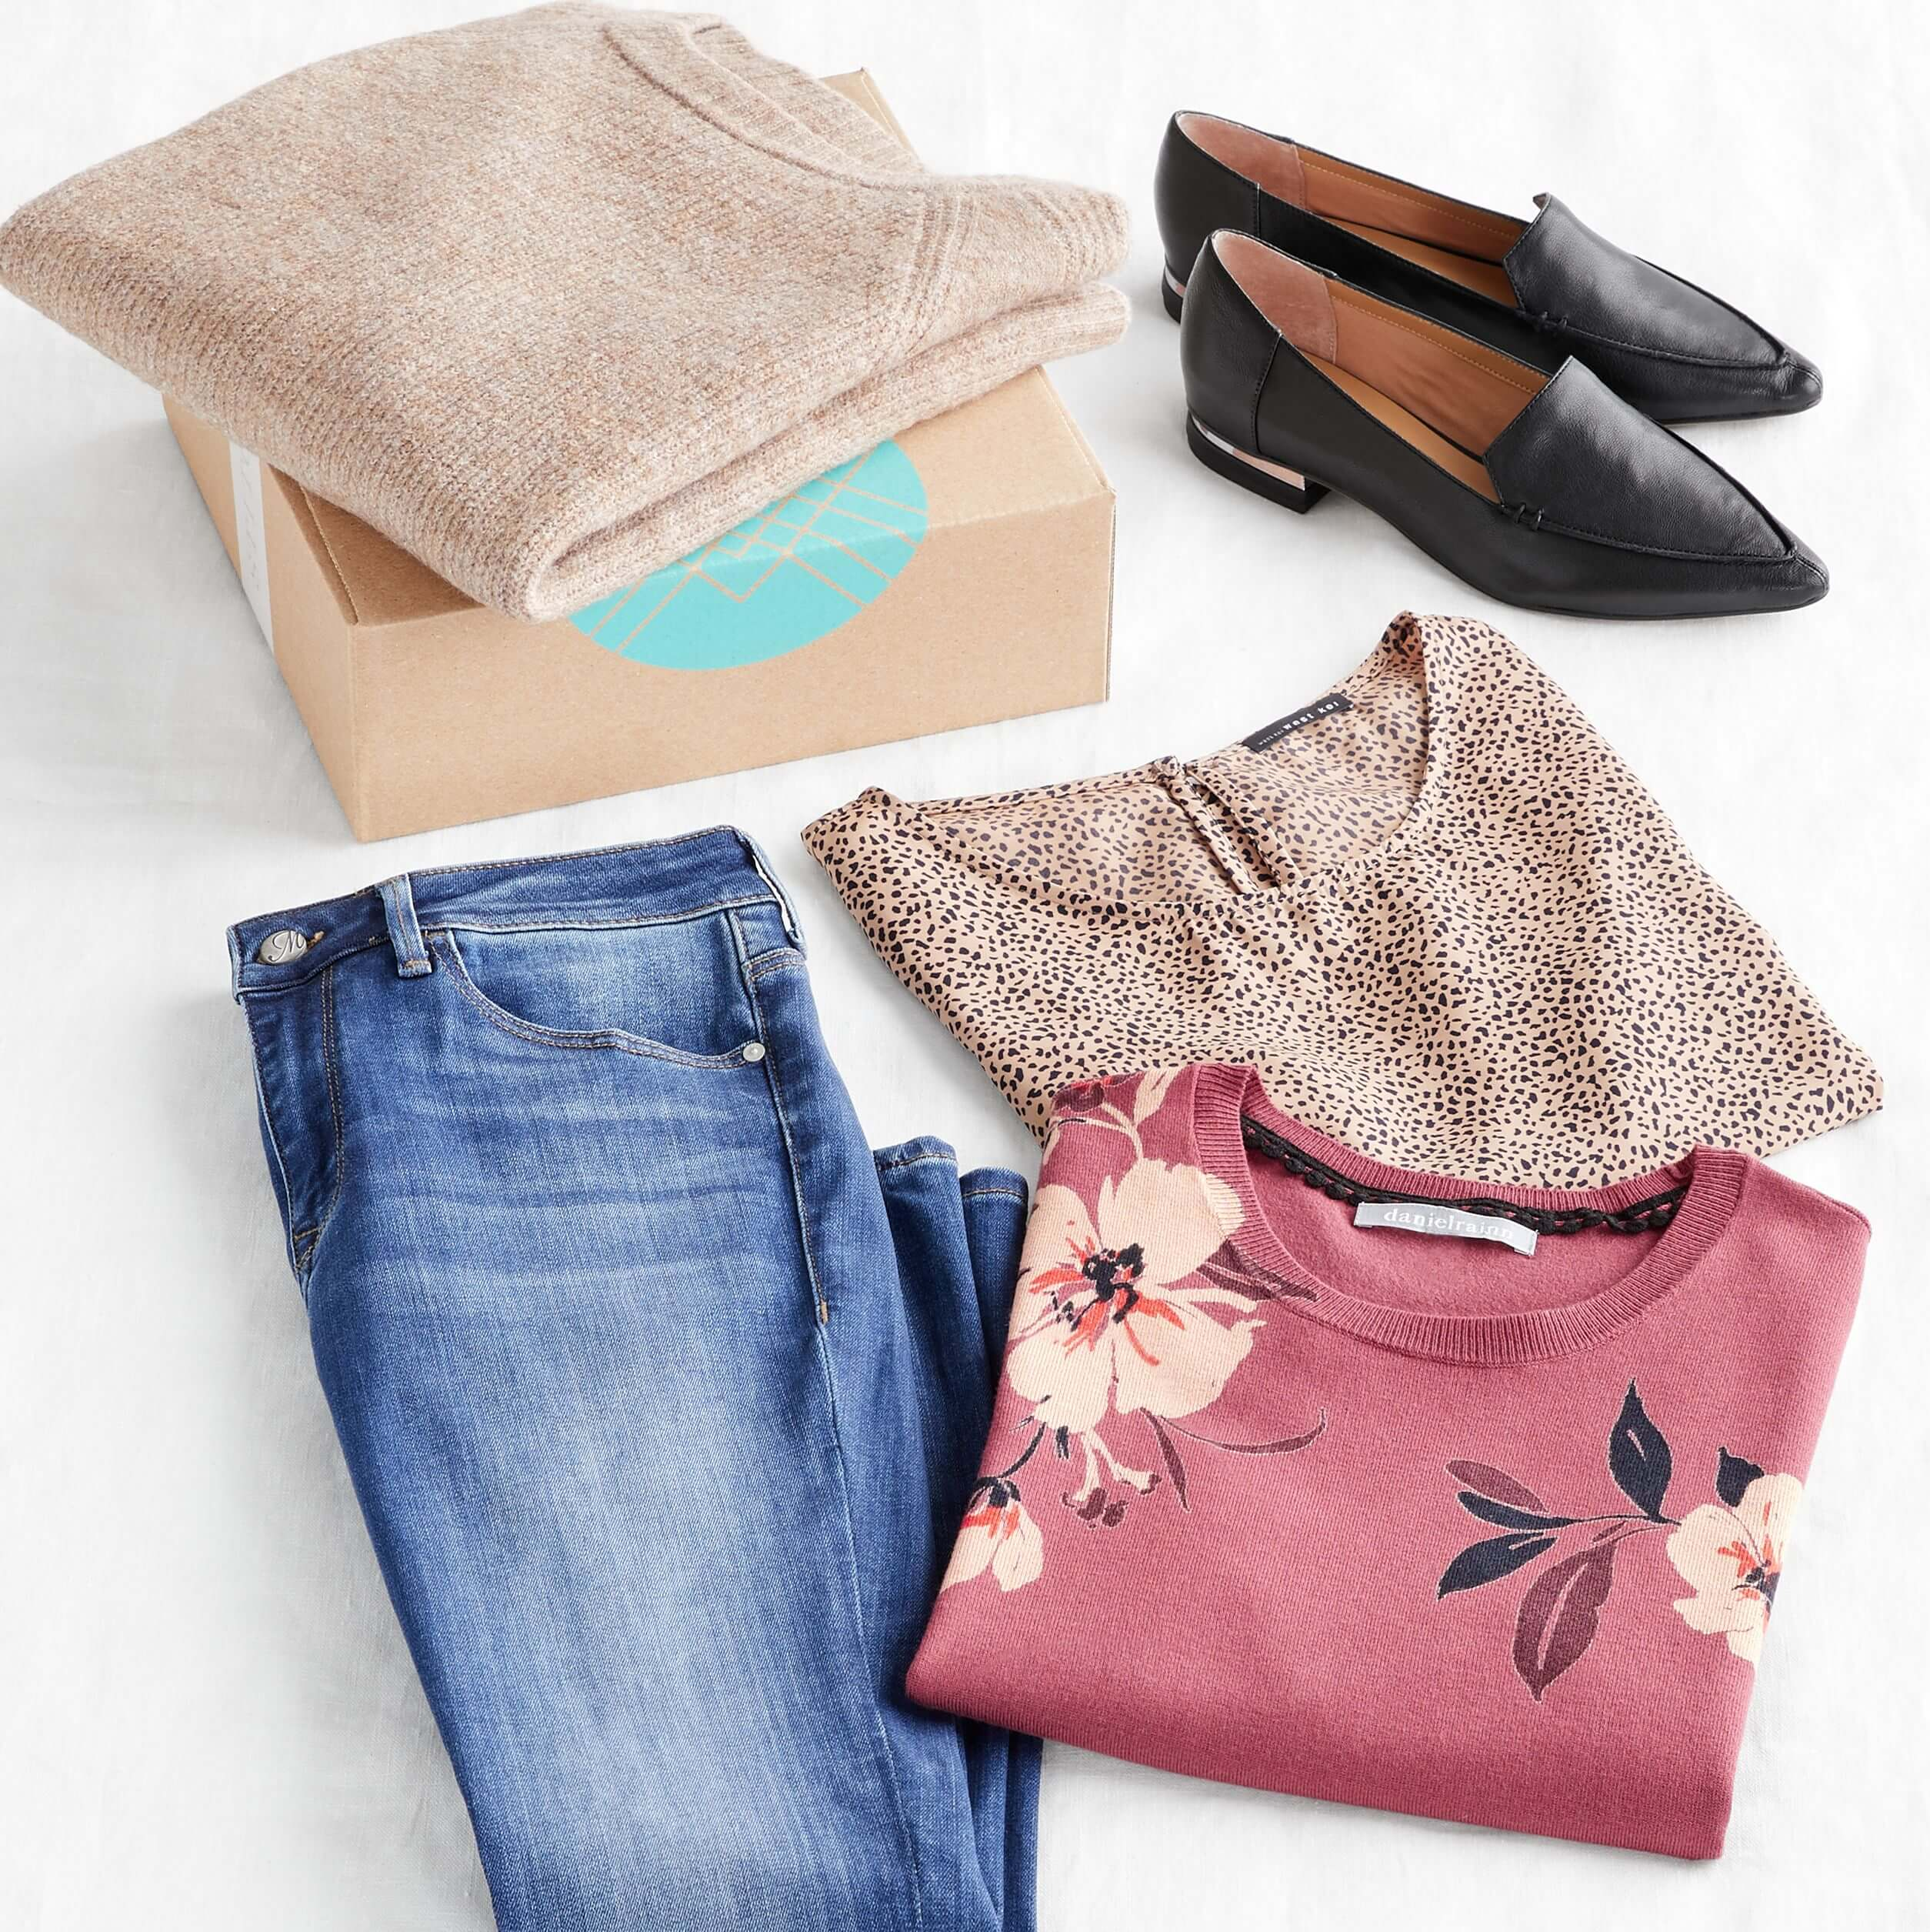 Stitch Fix Women's outfit laydown featuring a tan pullover on a Stitch Fix delivery box next to black loafers, blue jeans, brown animal-print shirt and pink floral pullover.